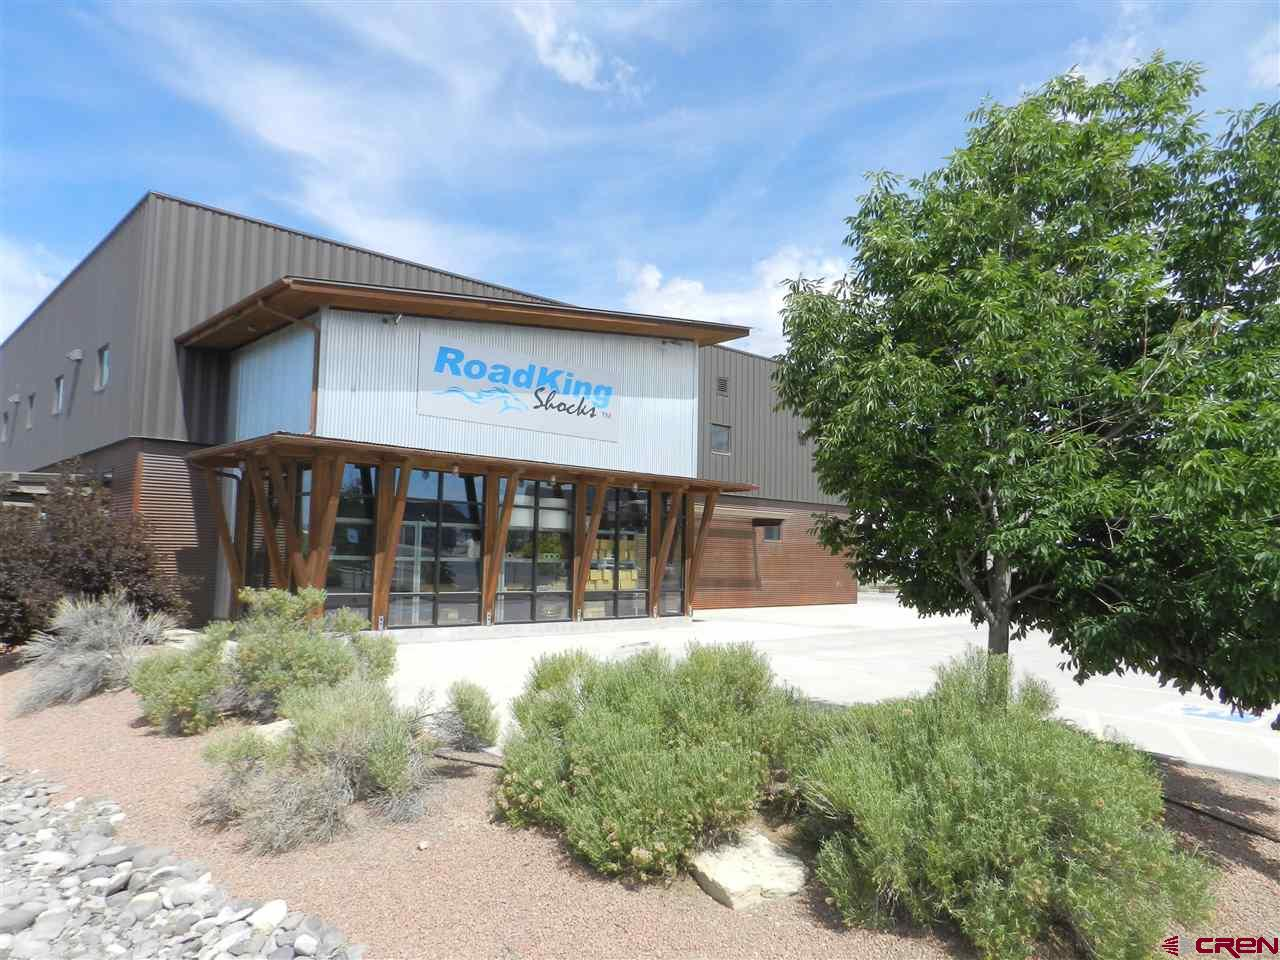 Perfect for investor or end-user, borders Colorado Outdoors! 6,787 sq.ft. commercial building (MOL) on a 0.85 acre lot. Large retail showroom, office space, service bay, wash bay with floor drain, and storage. Building has a security system. Fenced, paved yard. Ample off-street parking in large paved lot. Located just south of Montrose Regional Airport, near signalized intersection of N Townsend and N Grand Ave, and next to Montrose Ford. Strategically adjacent to the new Colorado Outdoors 164-acre multi-use river development. Easily accessible with a high-traffic count and extremely visible signage. Great location for retail, services, manufacturing, and professional offices. Property is fully leased until August 31, 2024. - Excellent Investment property. Neighboring 0.88-acre (MOL) vacant lot also available for sale (MLS # 582652). Incredible tax break with Opportunity Zone designation!